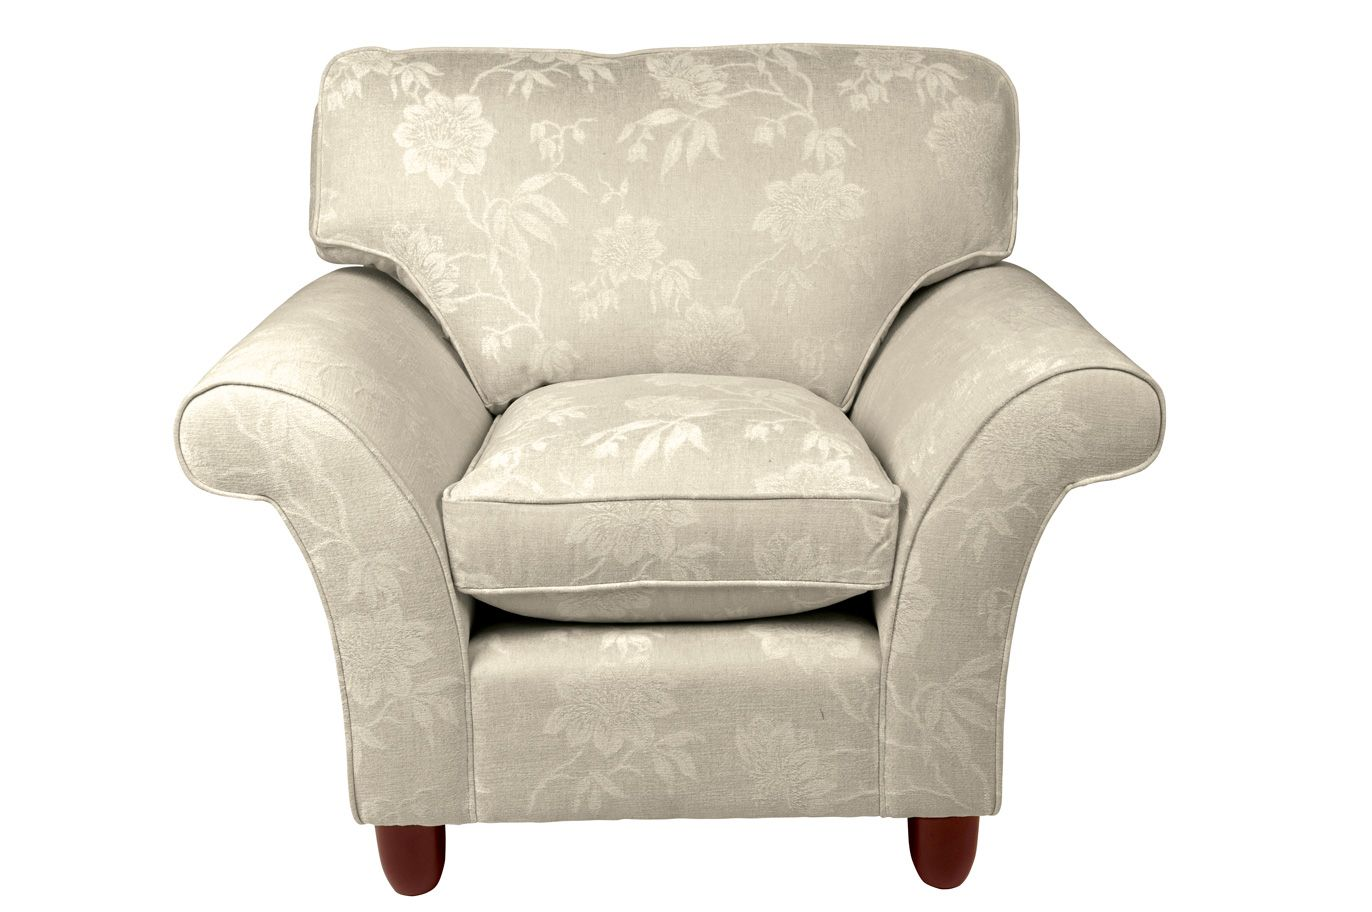 Fairmont Sofa Laura Ashley Soft Chair Armchair In Beige Damask Fabric From Ghost Furniture